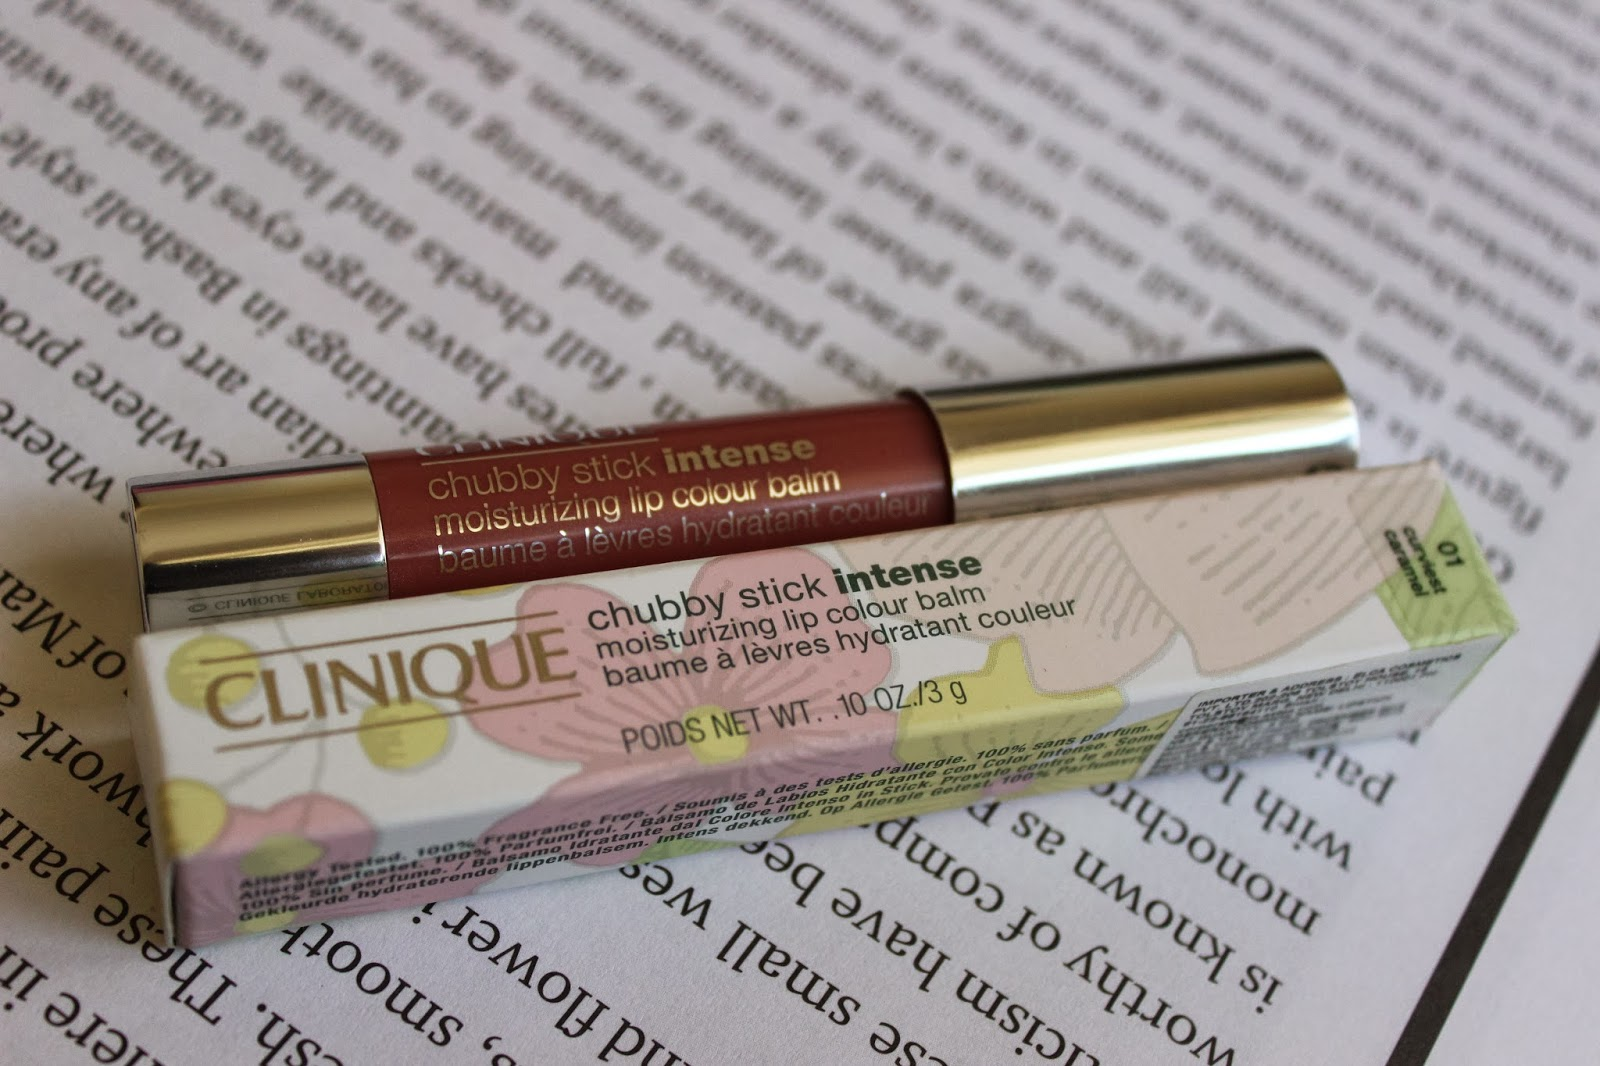 Clinique Lip Balm Intense